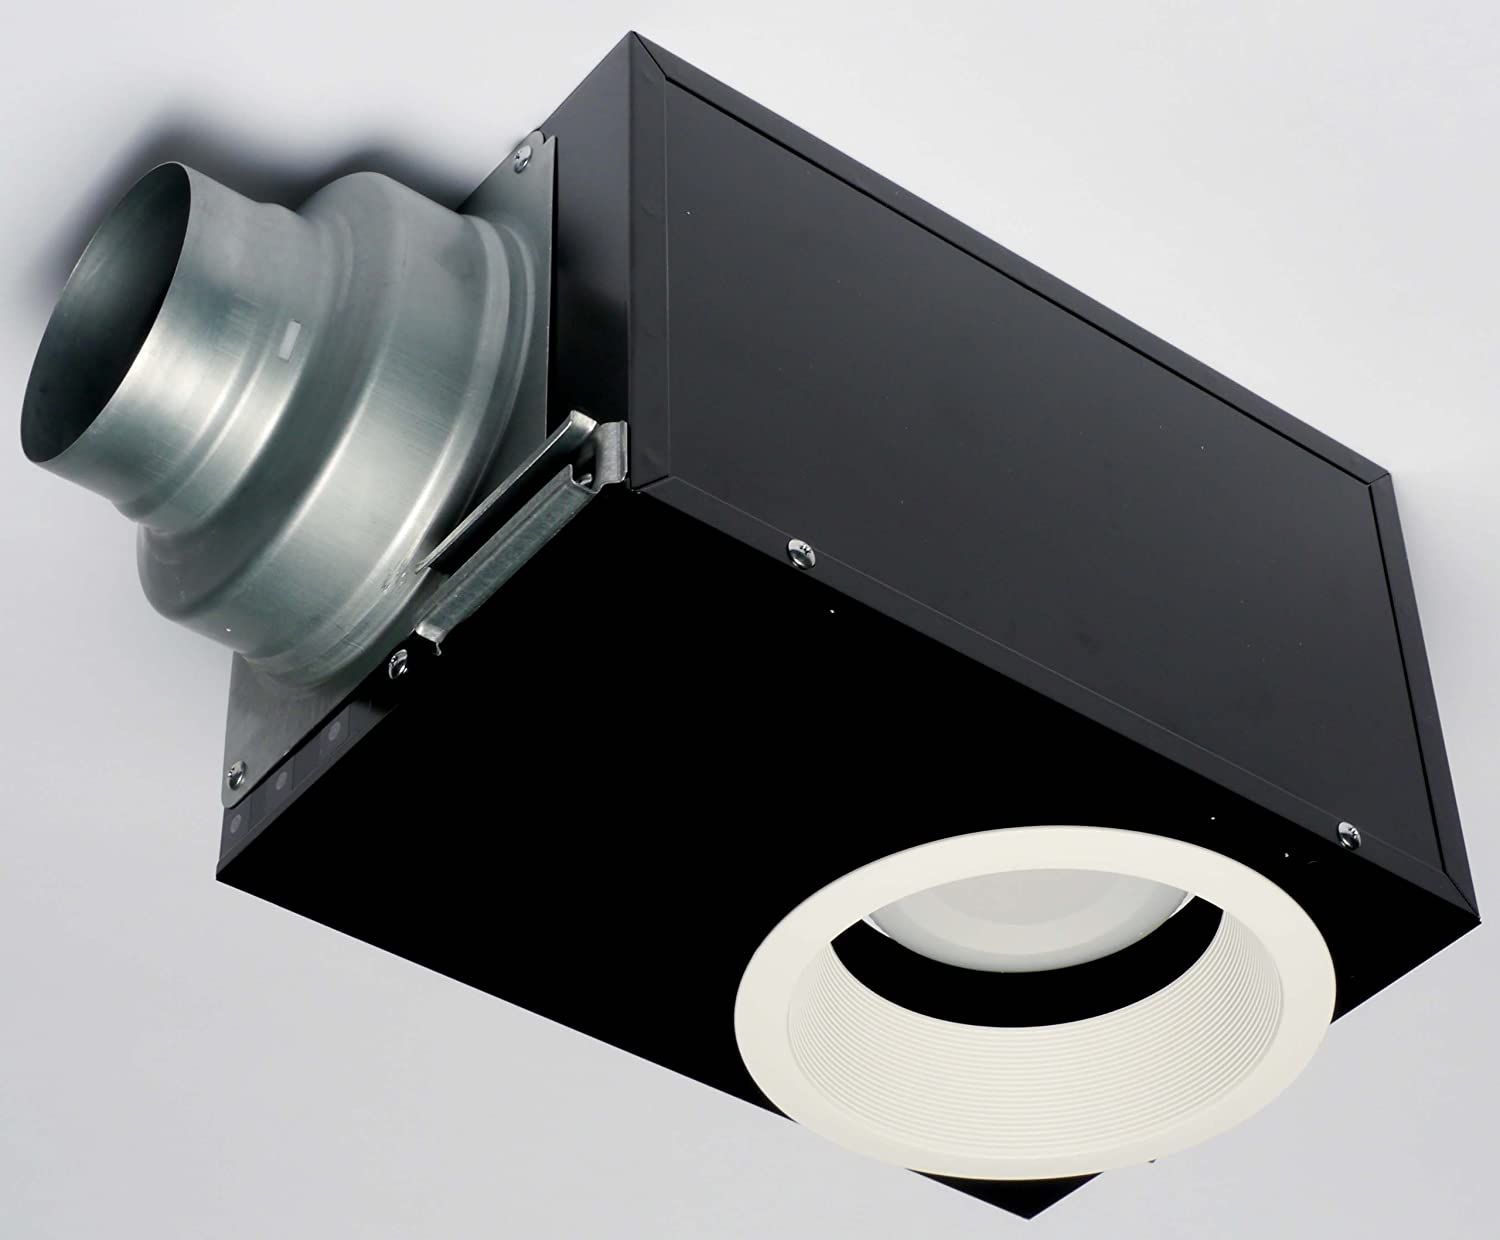 High Quality Panasonic FV 08VRL1 WhisperRecessed Bathroom Fan   Built In Household  Ventilation Fans   Amazon.com